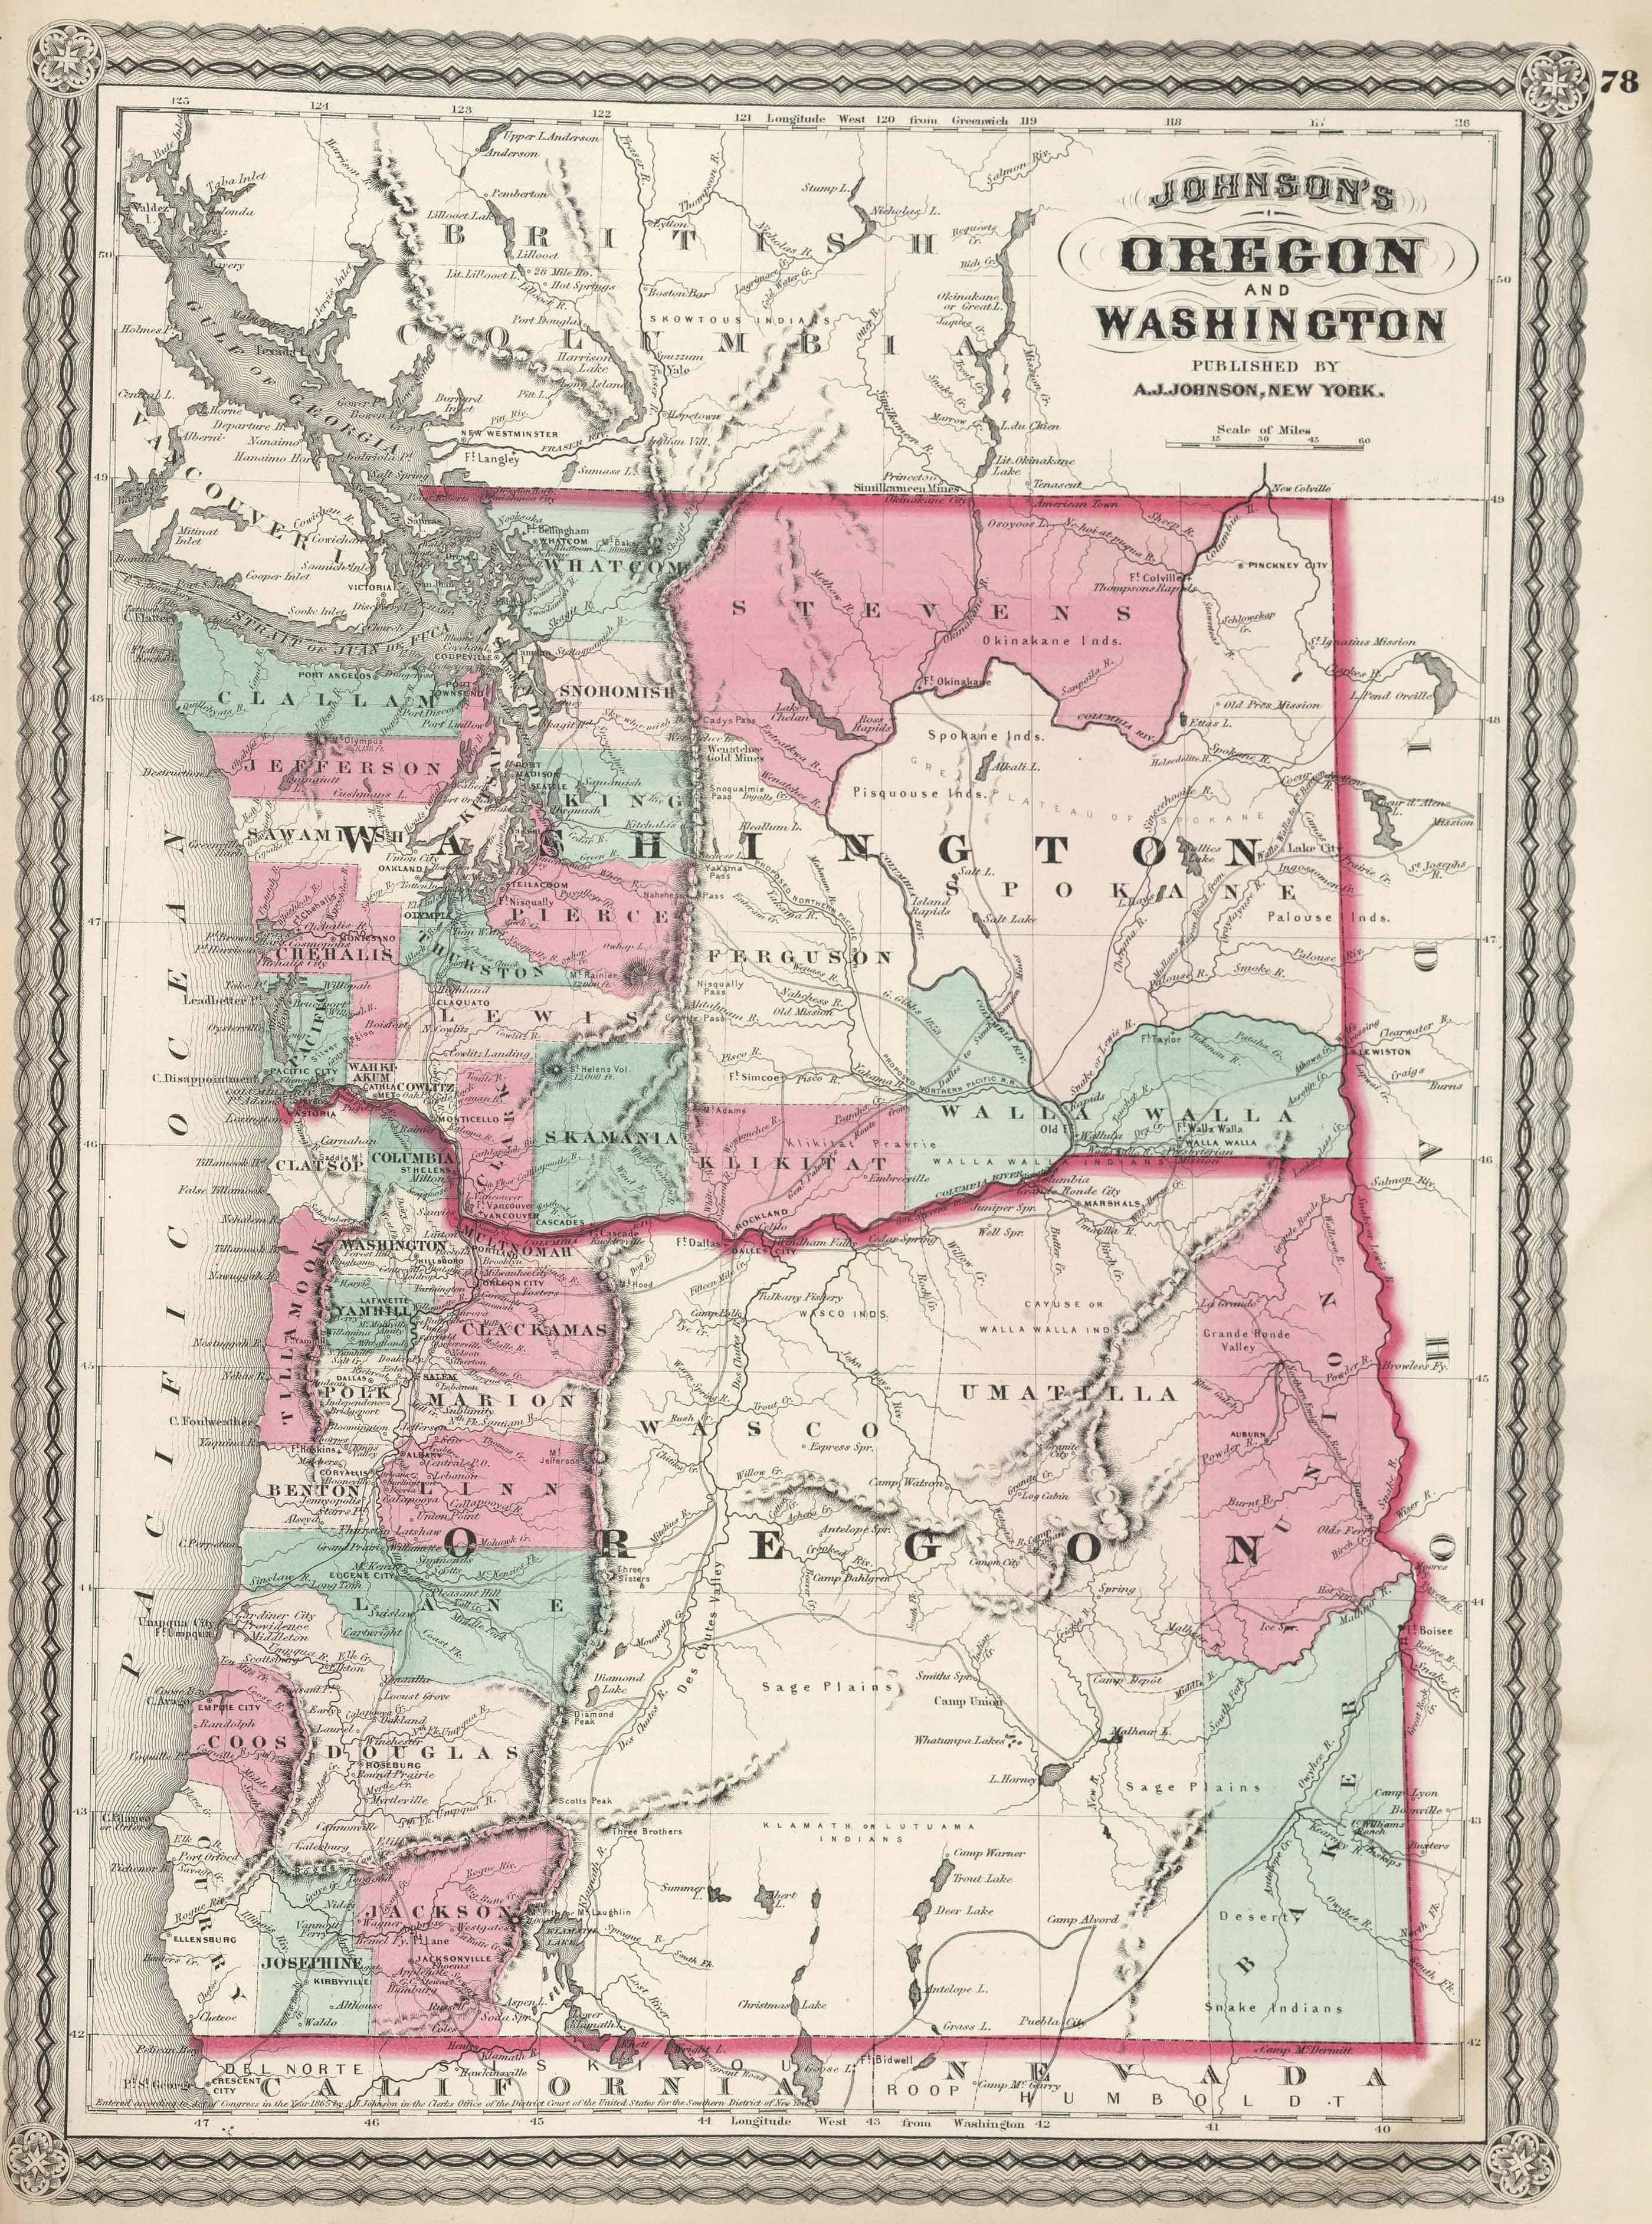 Old Historical City, County and State Maps of Washington